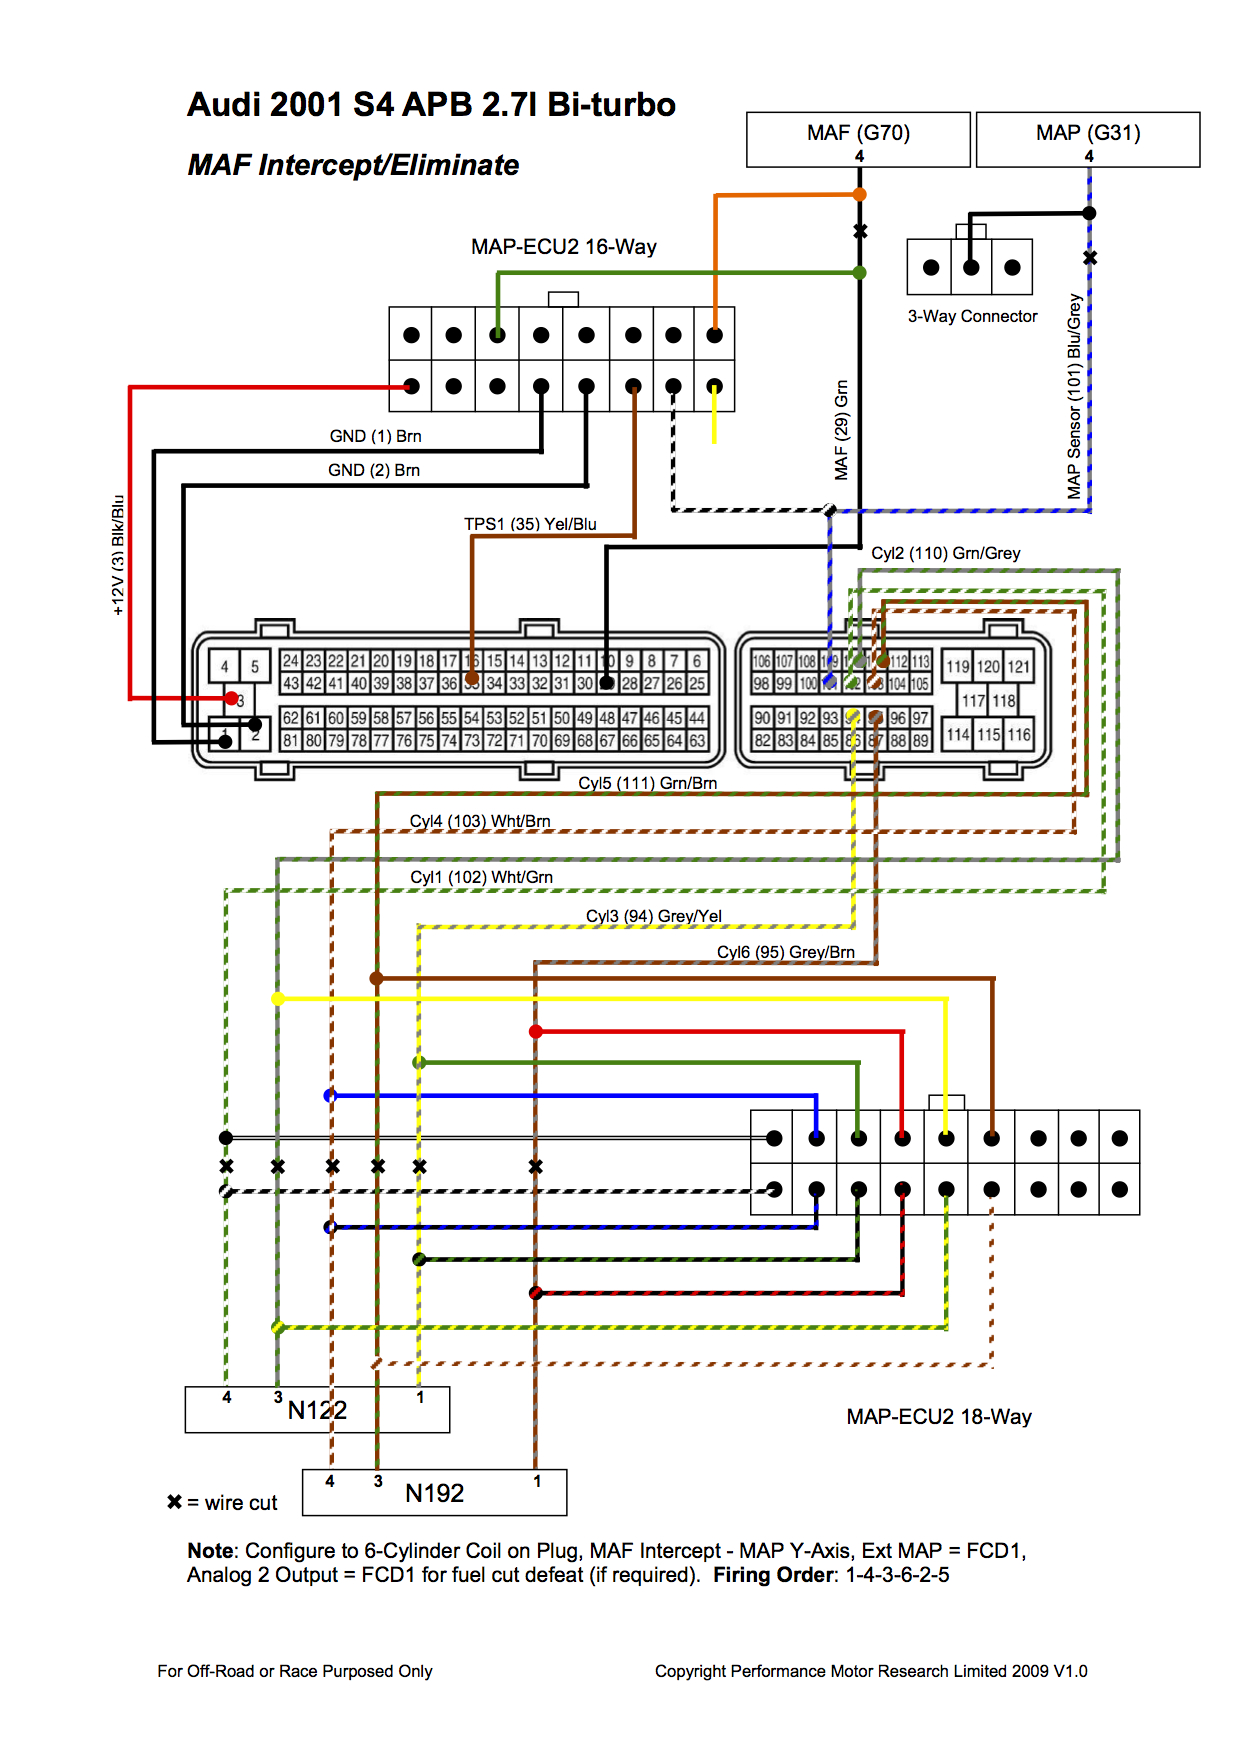 Audi S4 20011 ecu wiring diagram sr20det ecu wiring diagram \u2022 wiring diagrams Chevy 2.2 Engine Diagram at bayanpartner.co